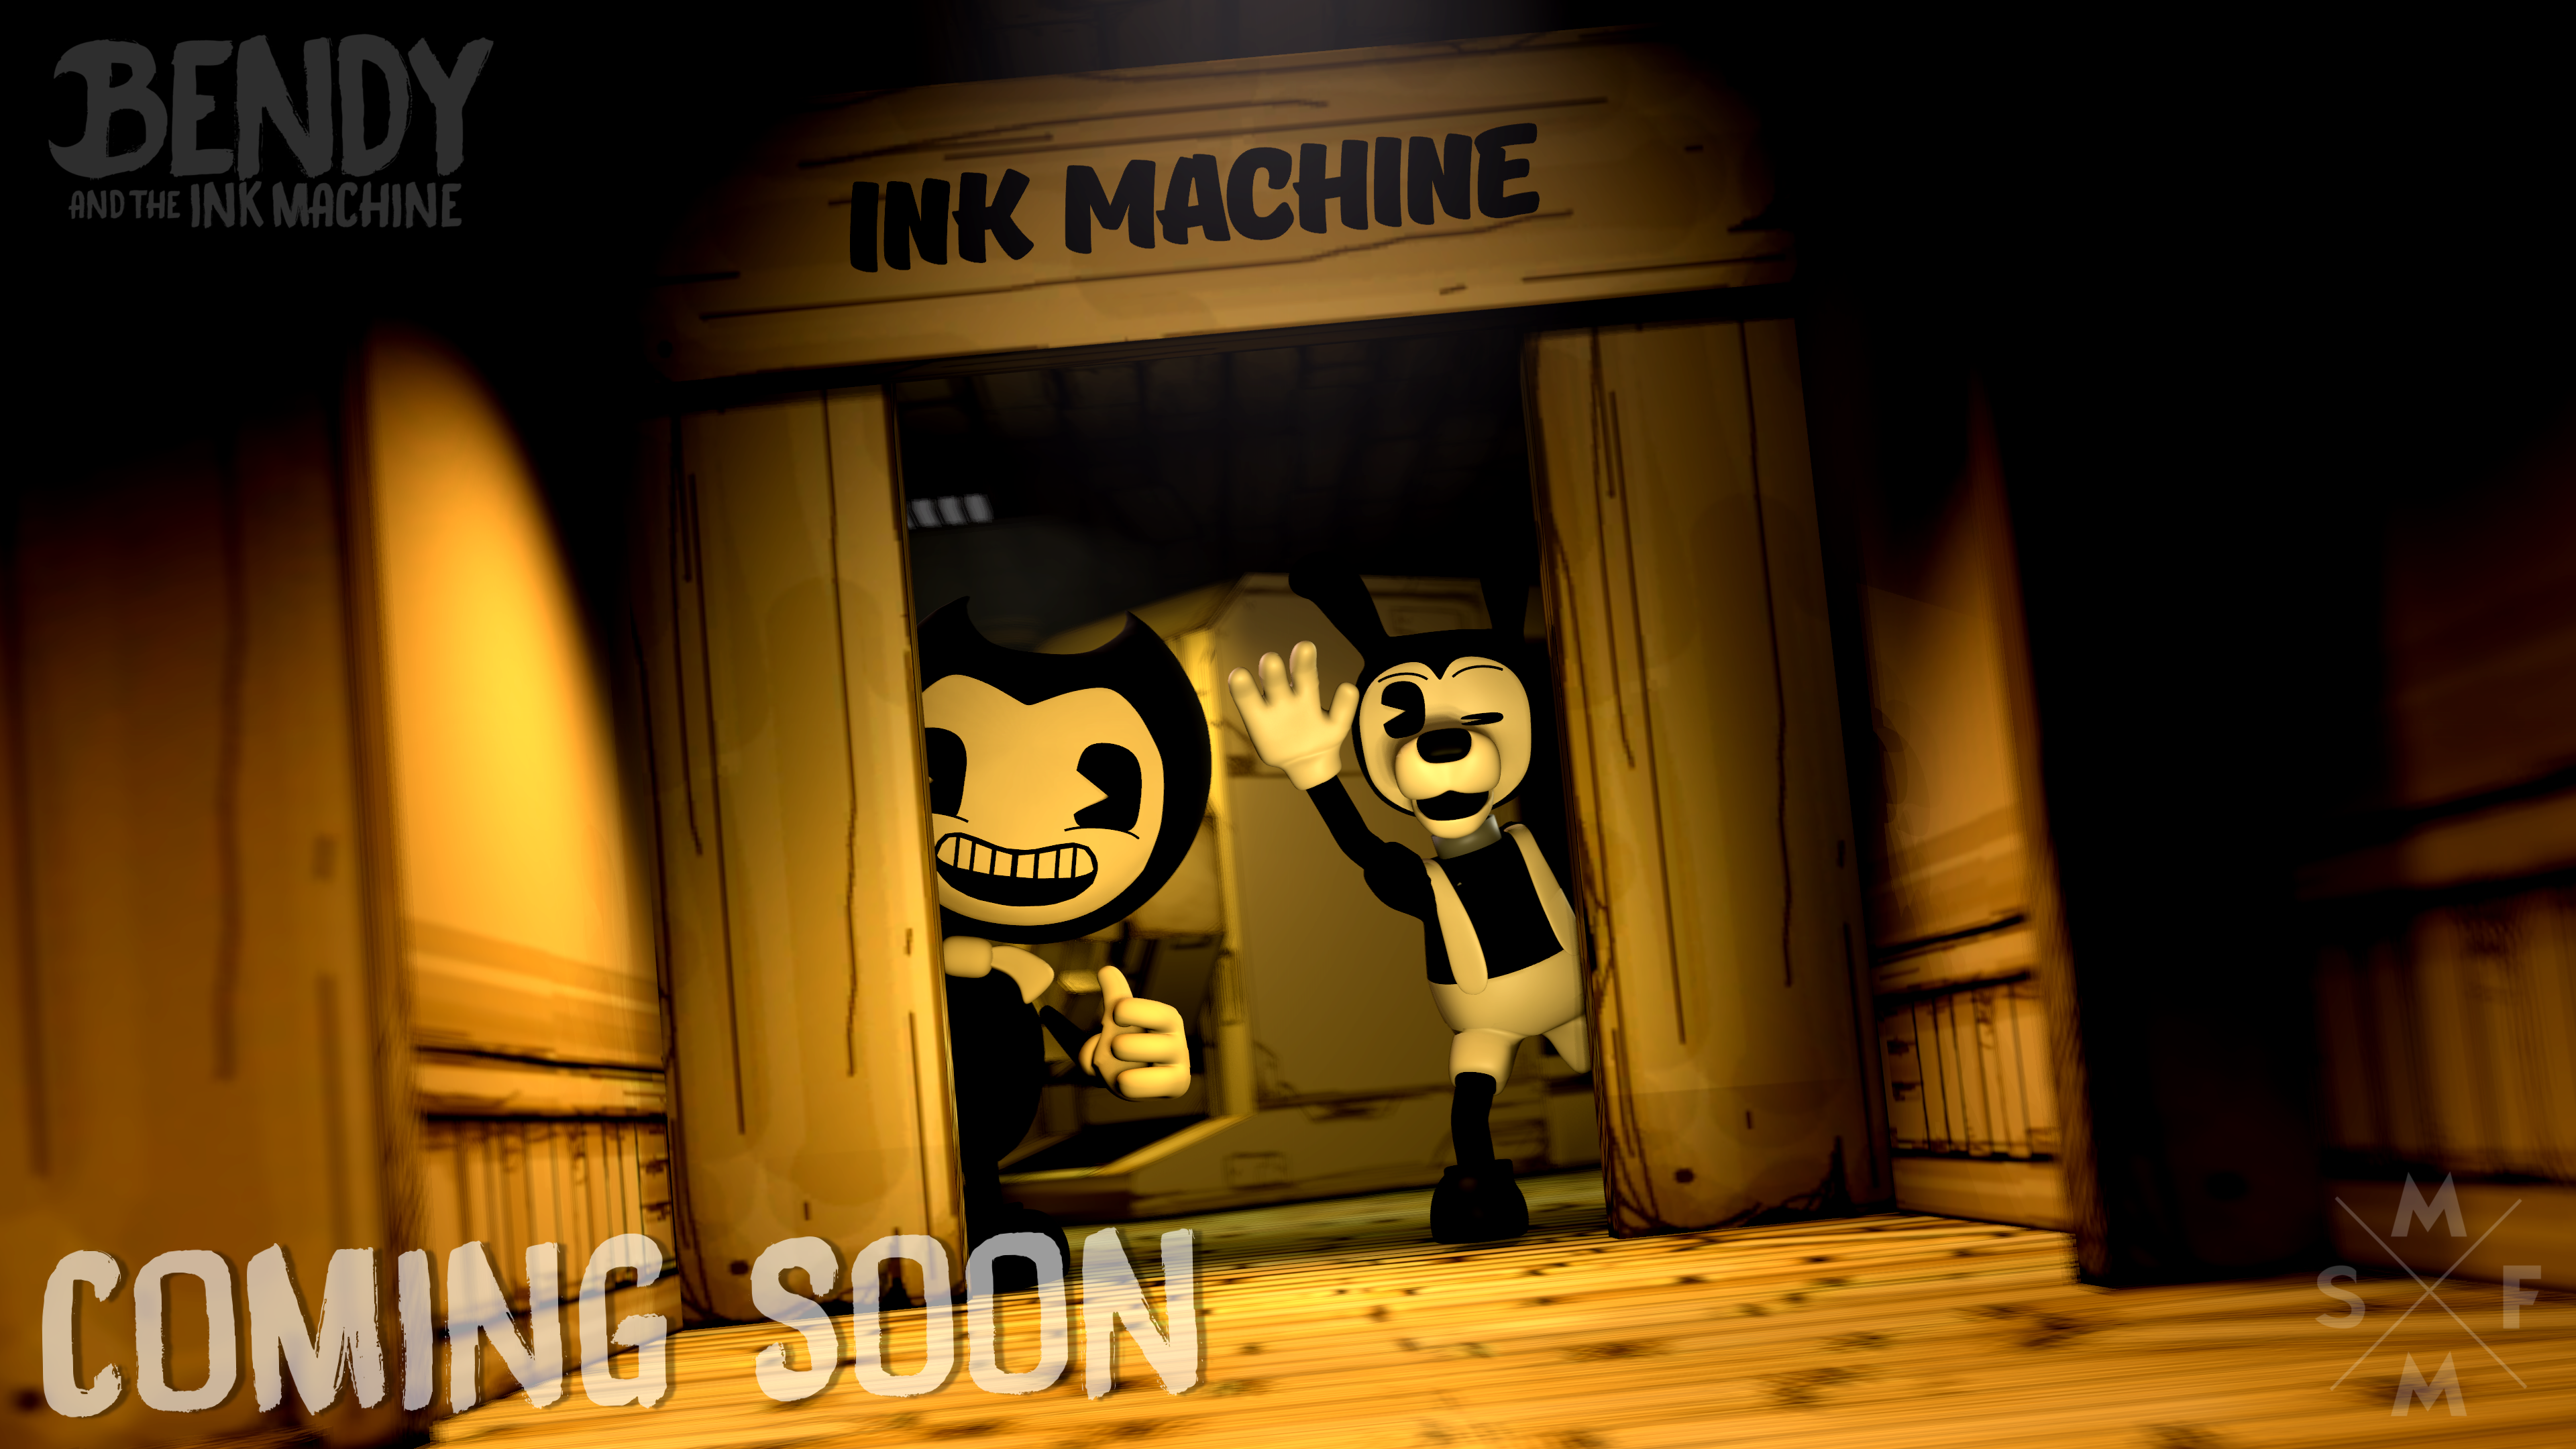 bendy and the ink machine song roblox id